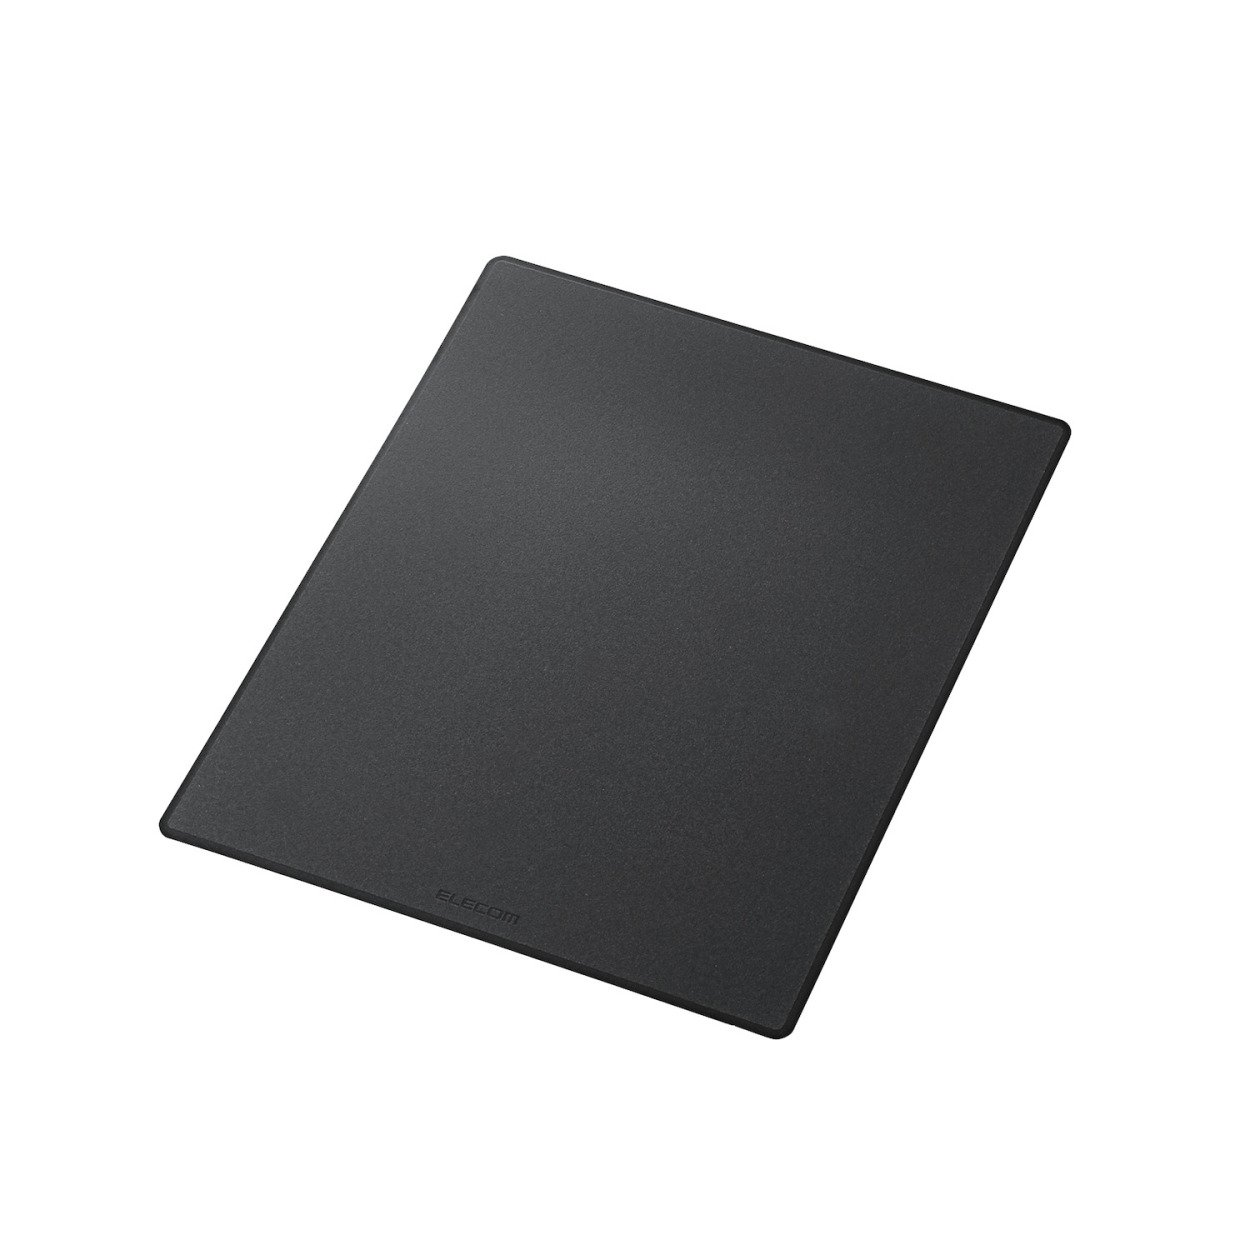 ELECOM Large Size Mouse Pad/Compatible with All Mouse Type/Precise Control/Anti-Skid Black MP-BGBK